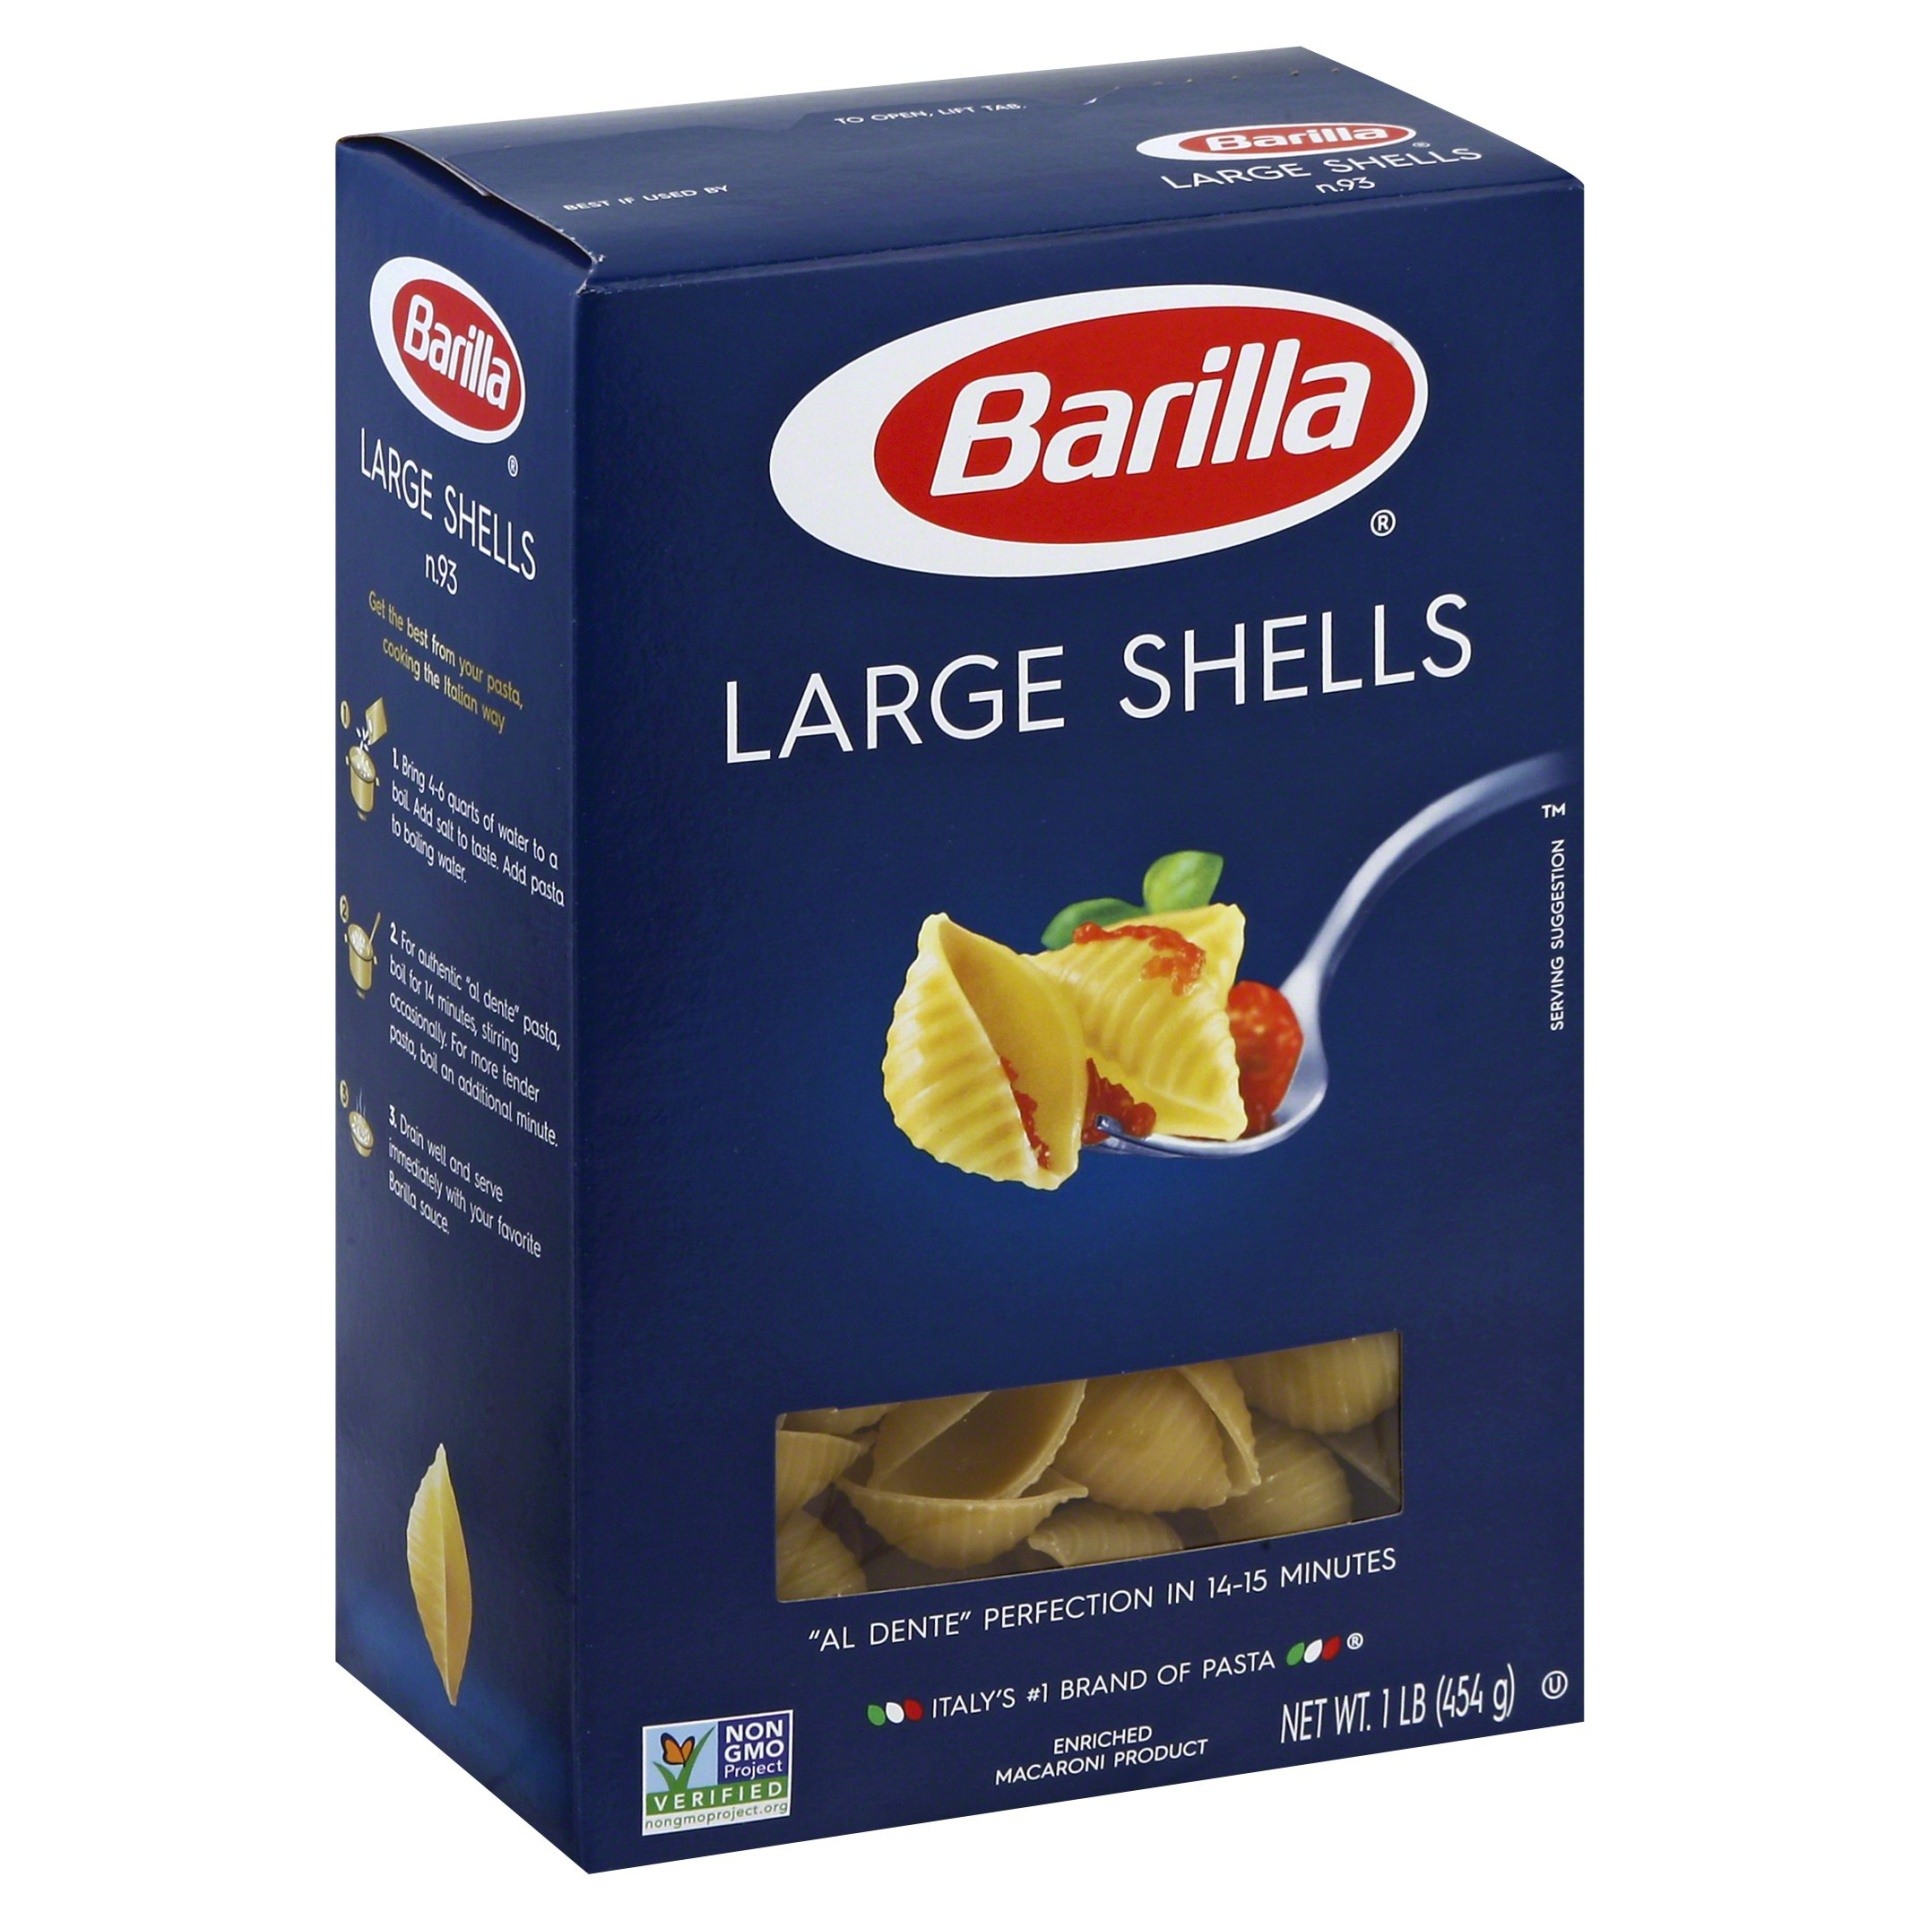 slide 1 of 8, Barilla Large Shell Pasta,